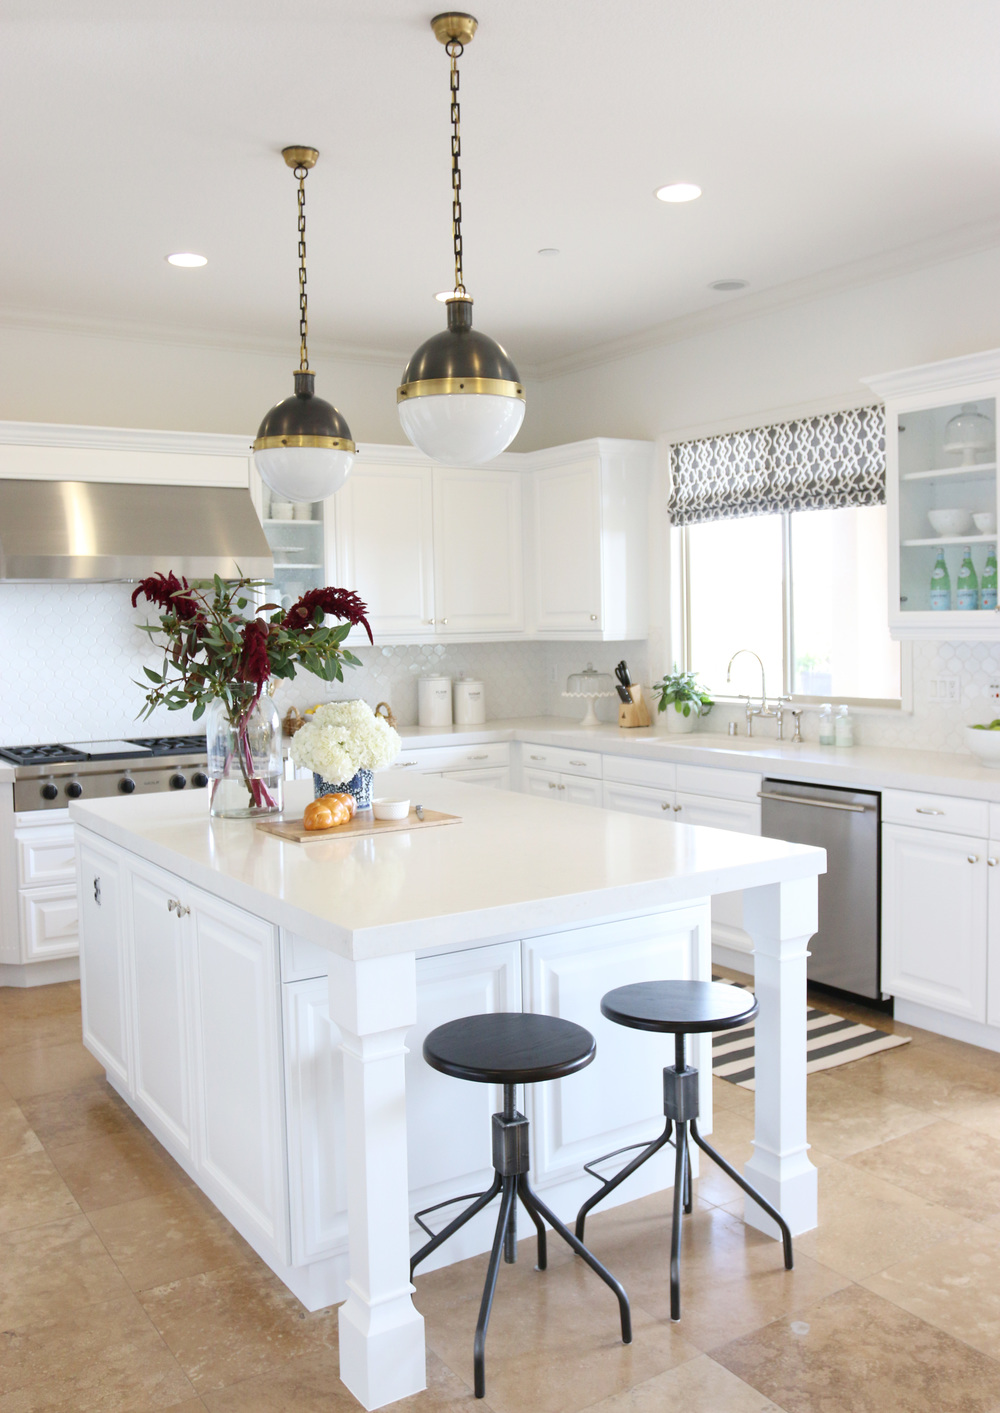 San clemente kitchen makeover before after studio mcgee - Studio mcgee ...